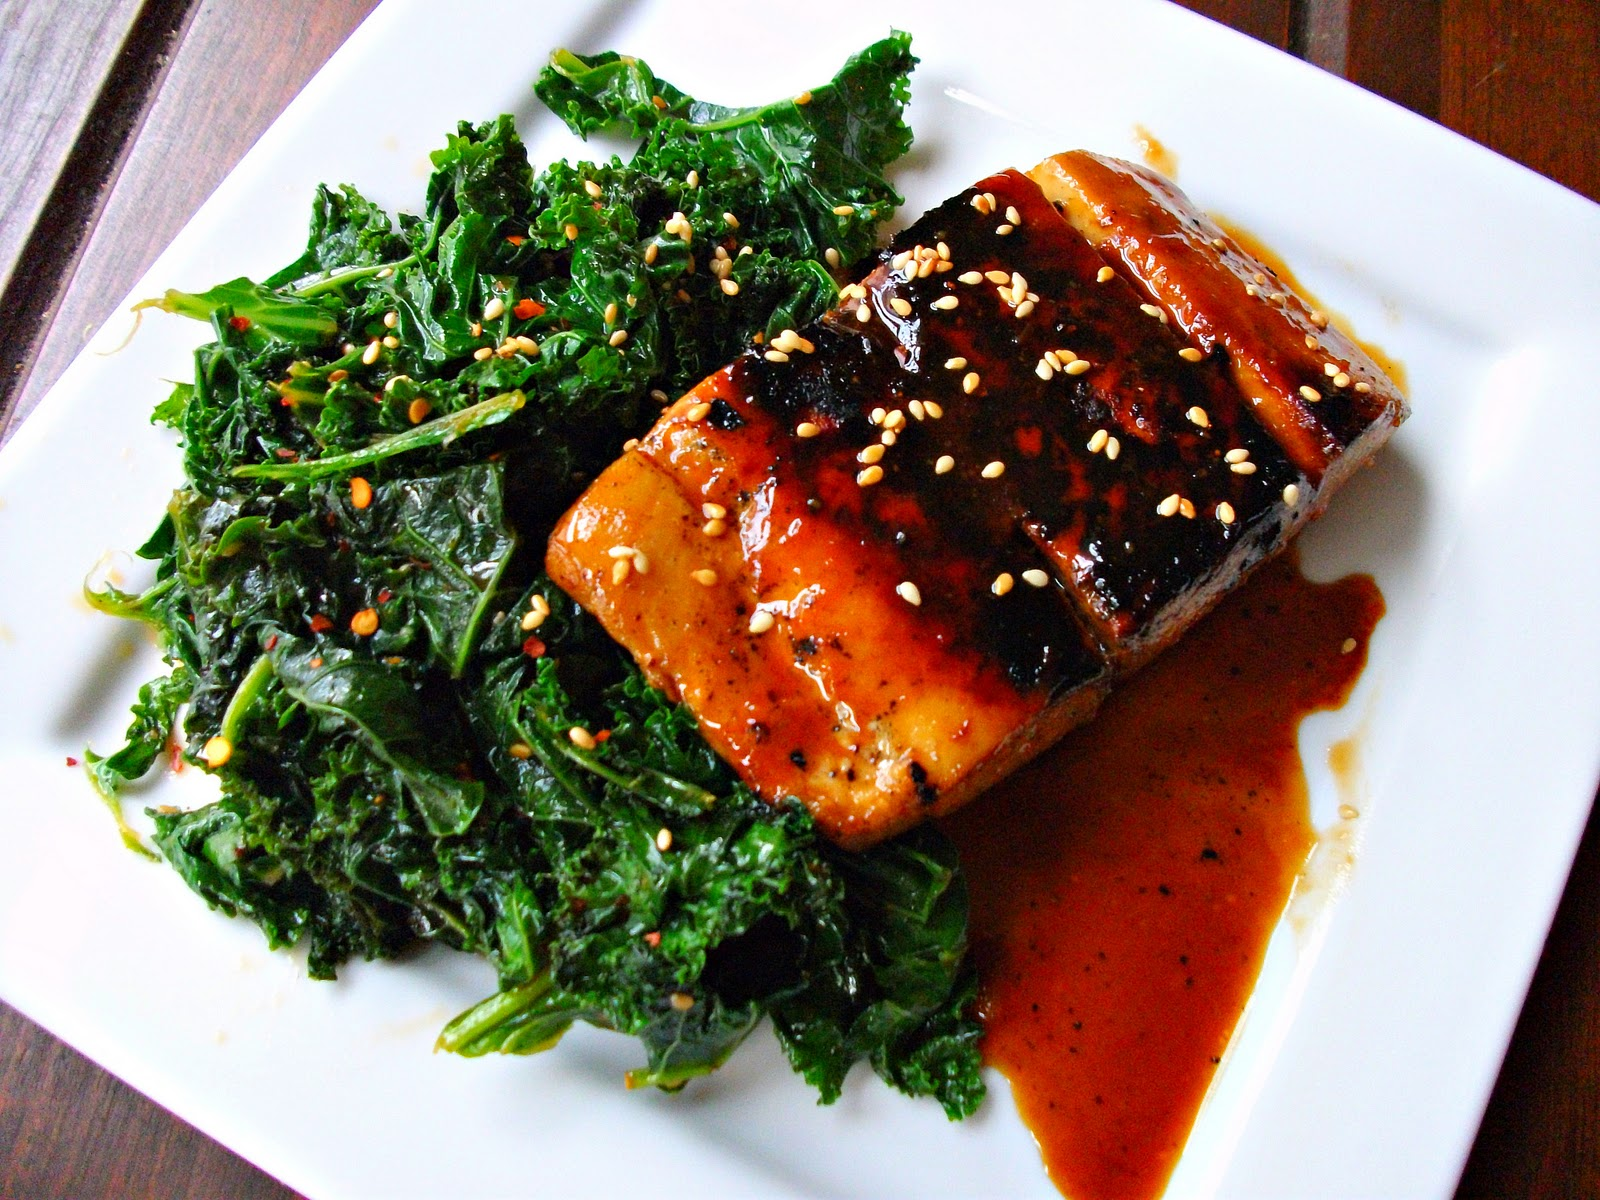 Sake-Miso Glazed Salmon with Spicy Sesame Kale